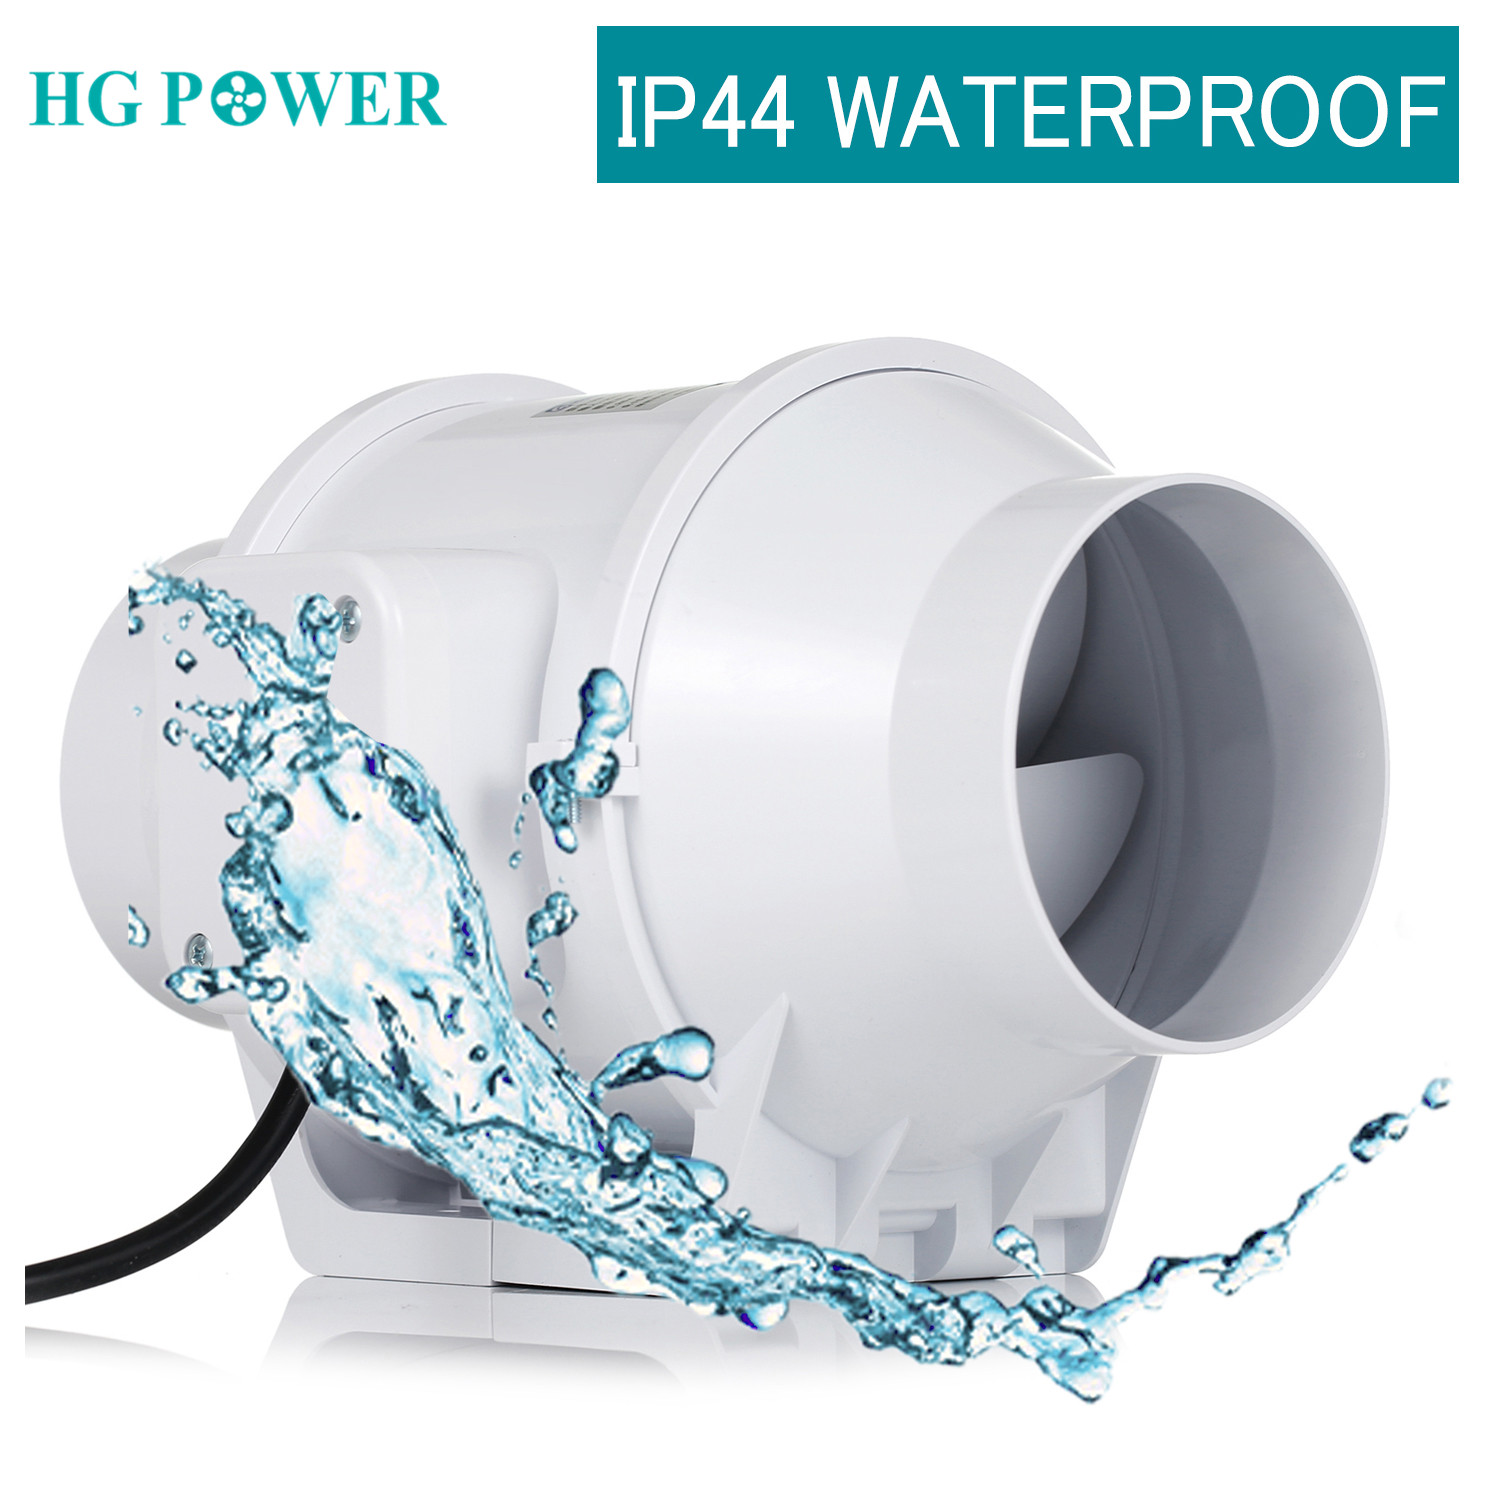 220V Silent Inline Duct Fan For Toilet Bathroom Ventilation System Highflow Exhaust Fan Air Extractor For Home Ventilation 5inch